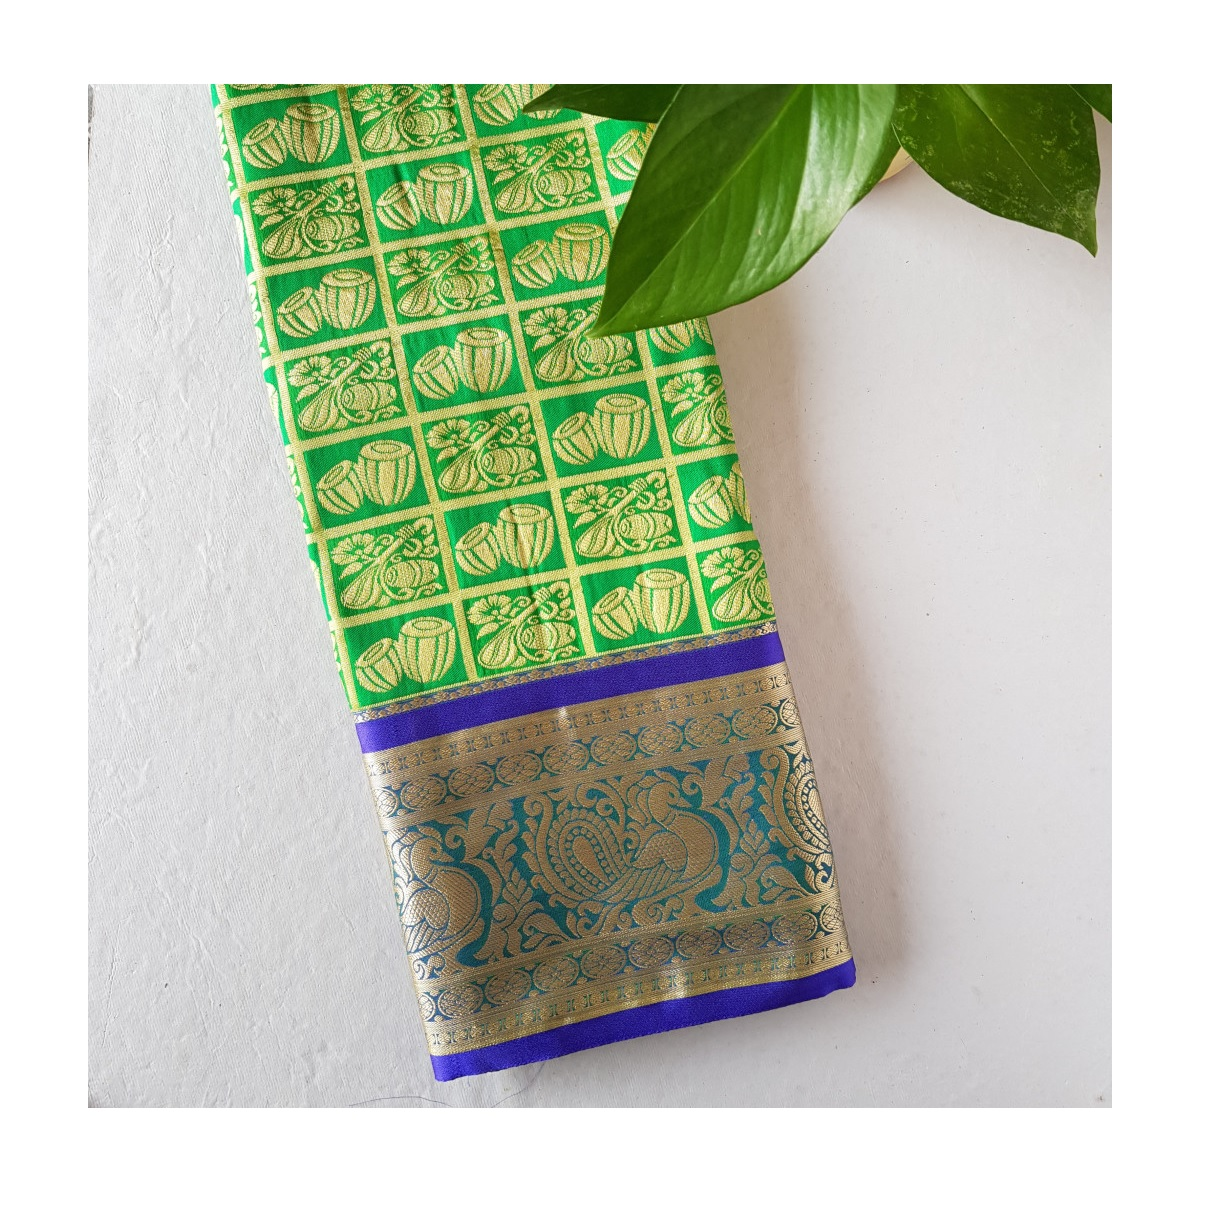 Soft Silk Saree with Zari Work of Musical Instruments Green : Picture